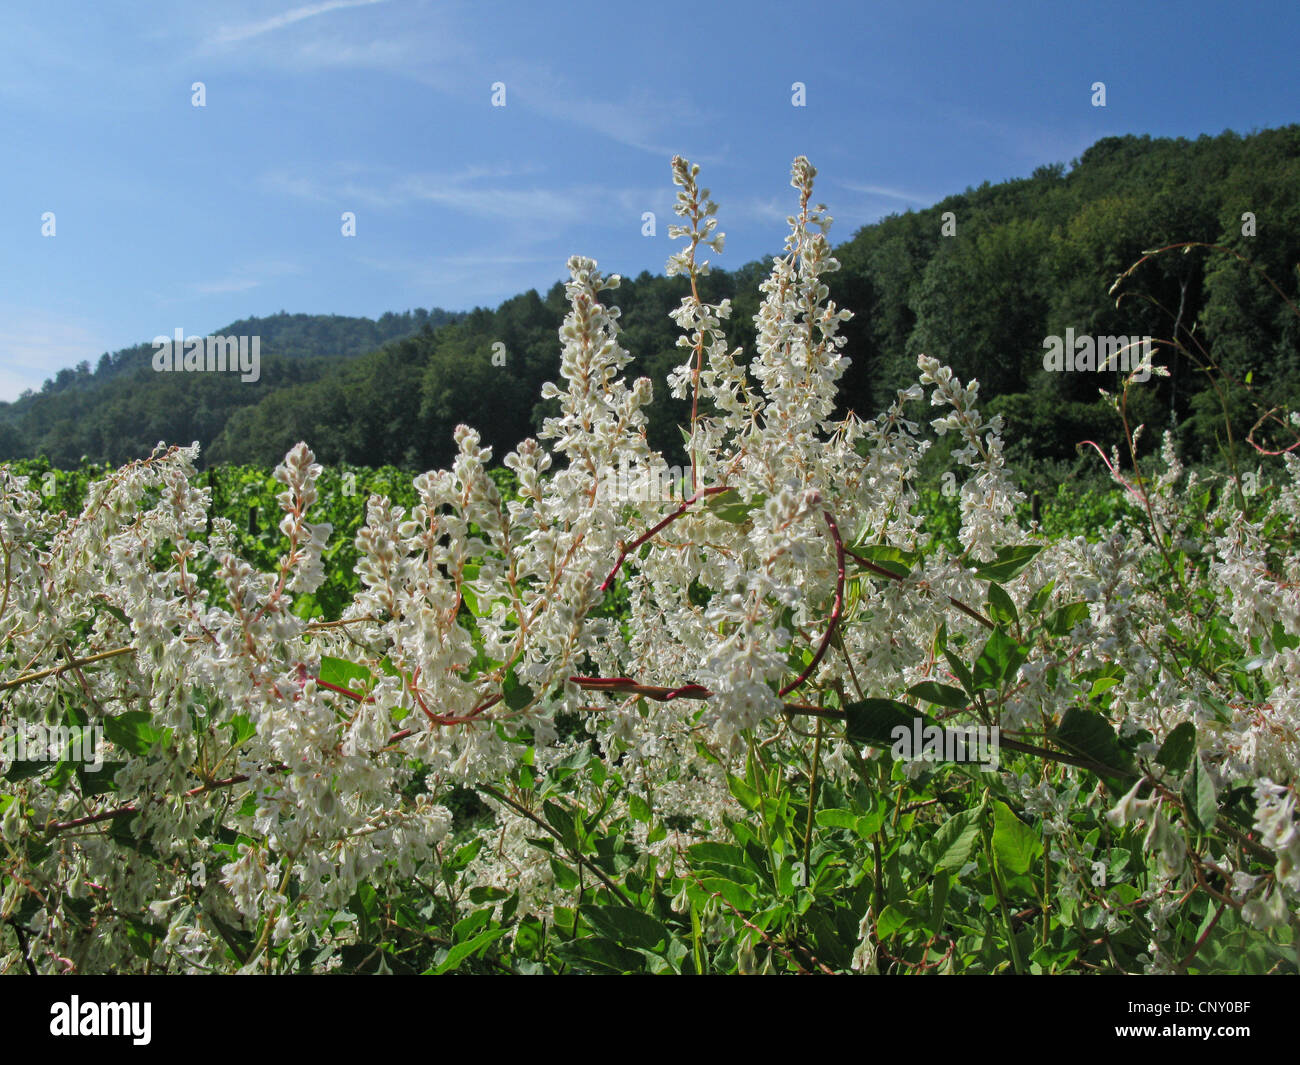 Russian vine, Bukhara fleeceflower, Chinese fleecevine, Mile-a-minute, Silver lace vine (Fallopia baldschuanica, Stock Photo